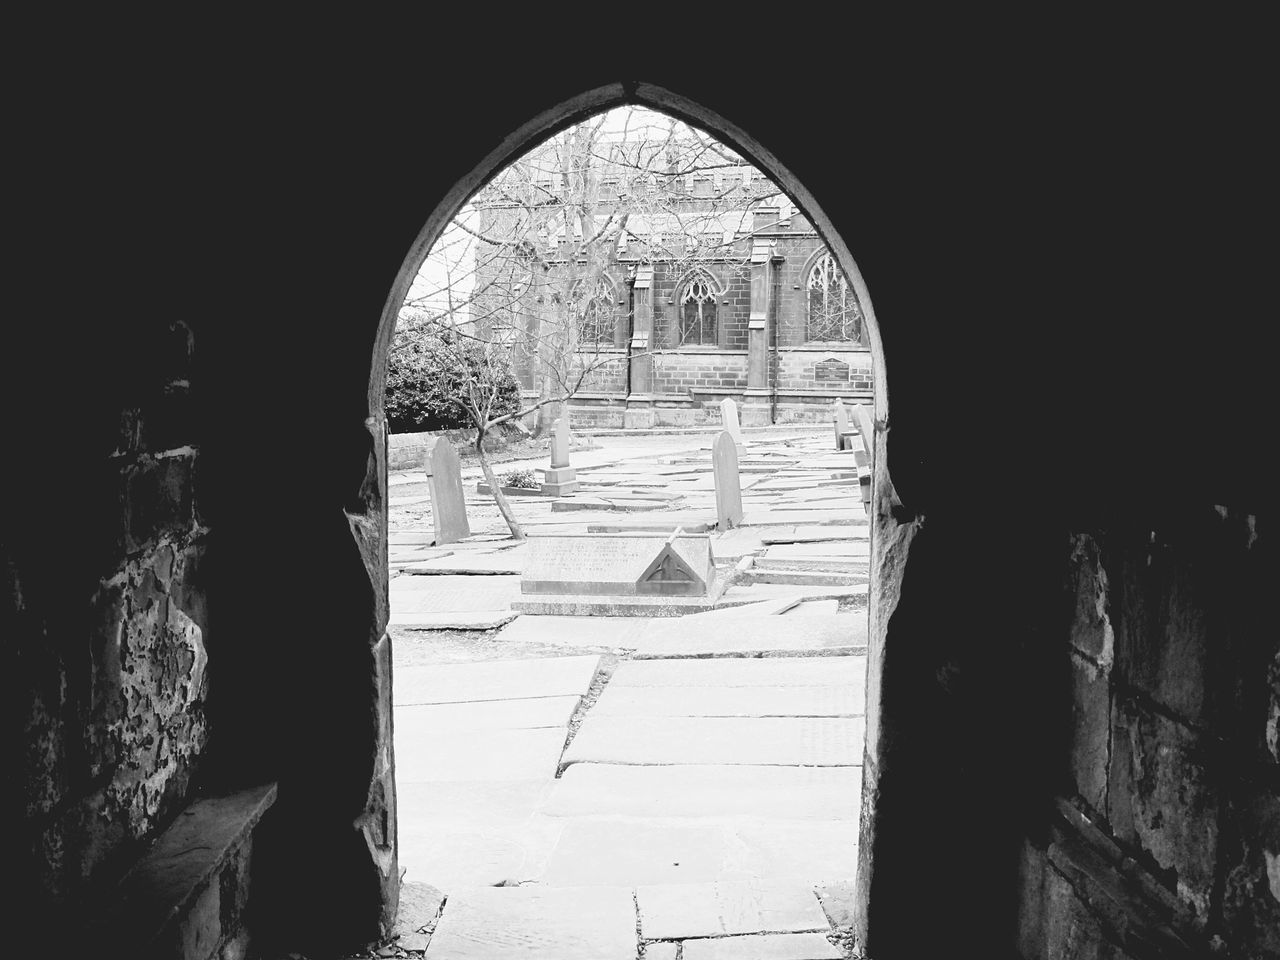 Things I Like Windows Doorway Open Space Church Churches Churchporn Churchyard Ruins Graveyard Beauty Graveyard Black And White Black And White Architecture Black & White Monochrome Frame It Stone Lined Up Church Ruin Yorkshire Old Buildings Church Ruins Here Belongs To Me Heptonstall